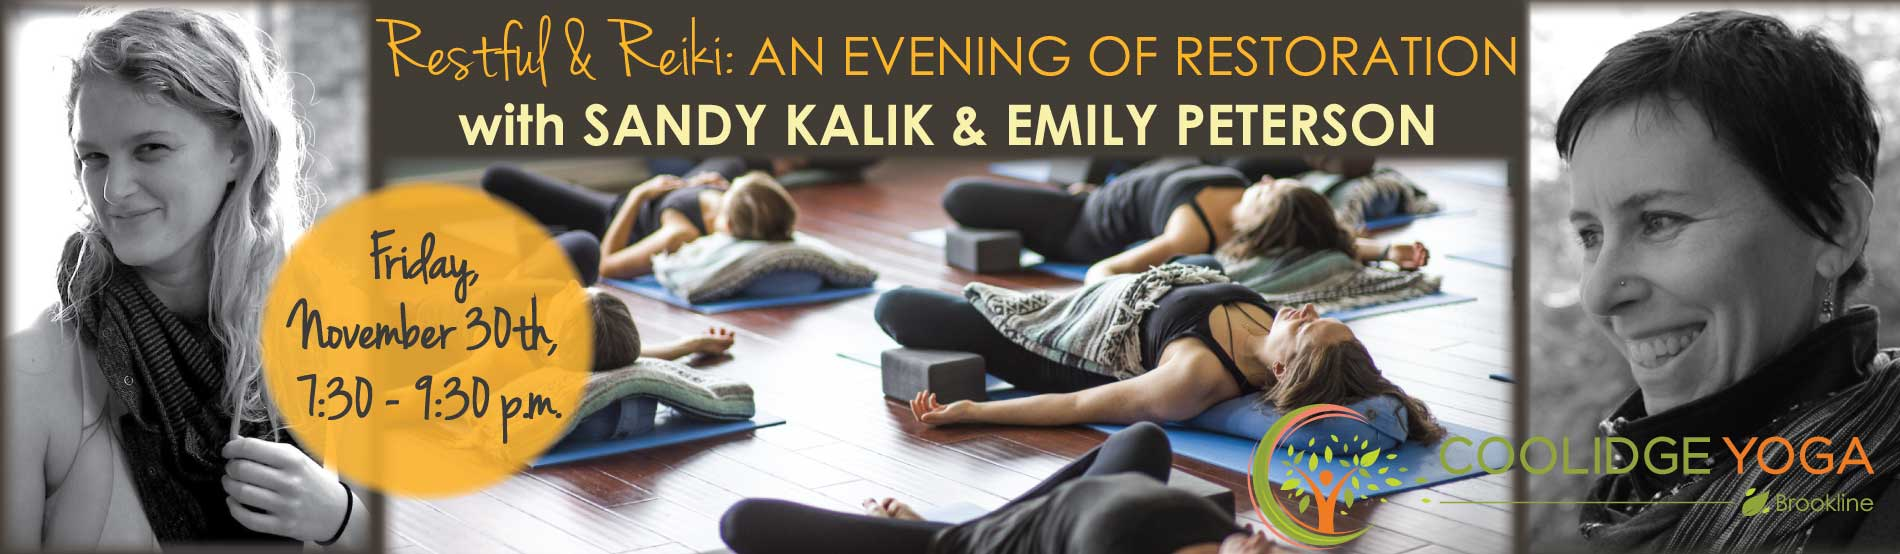 Restful & Reiki - with Sandy Kalik & Emily Peterson